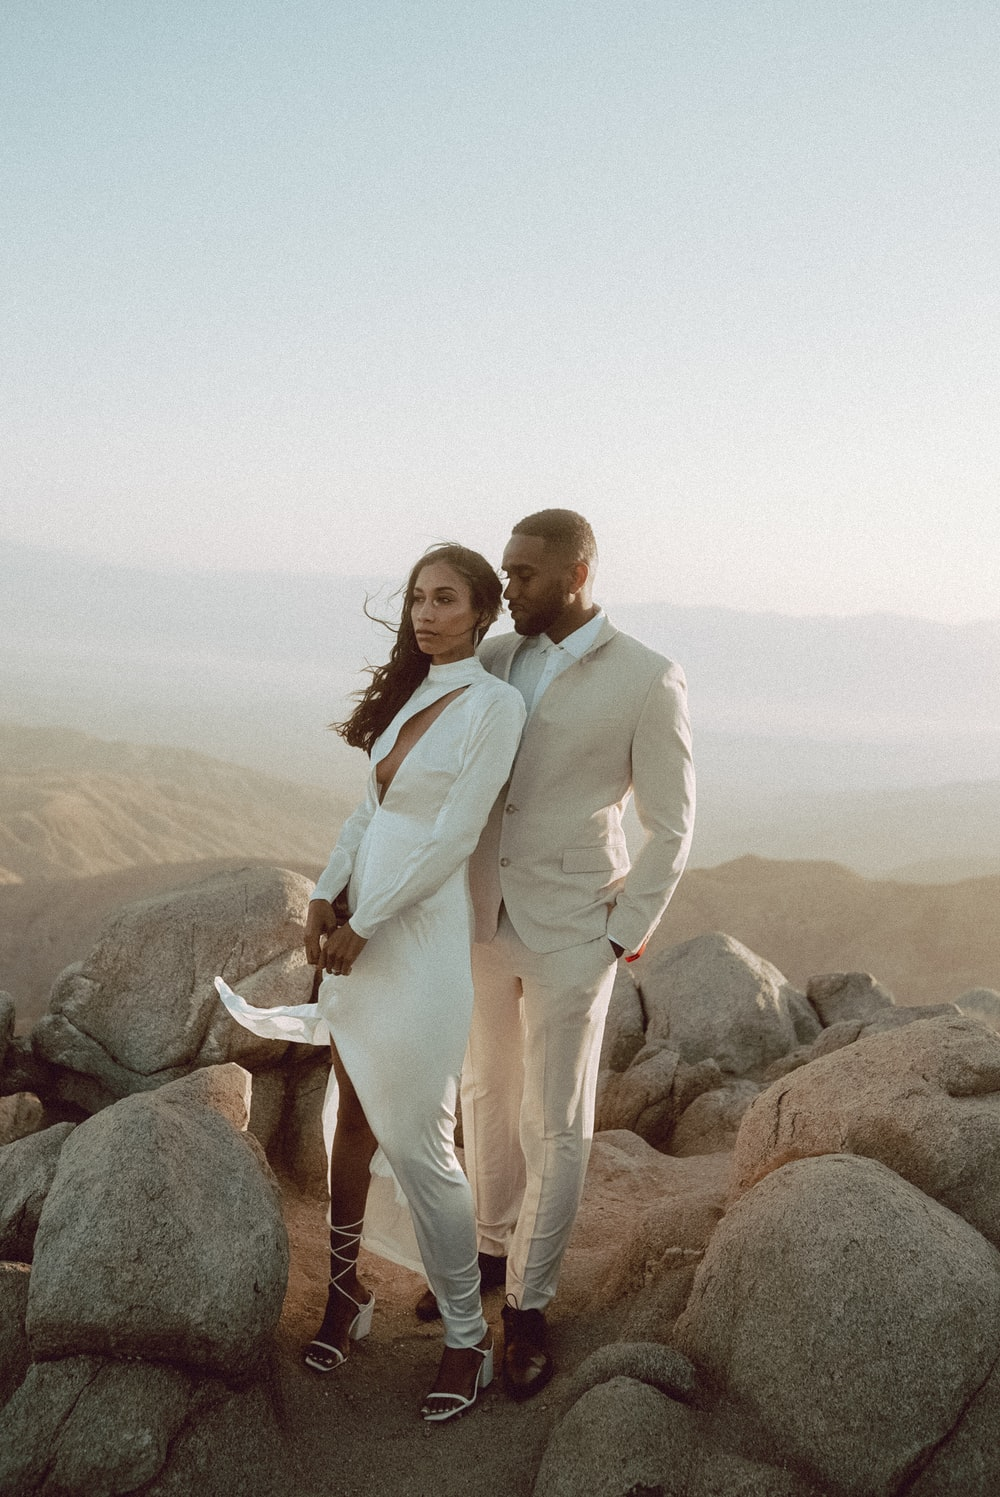 man in white suit standing beside woman in white dress on rock during daytime